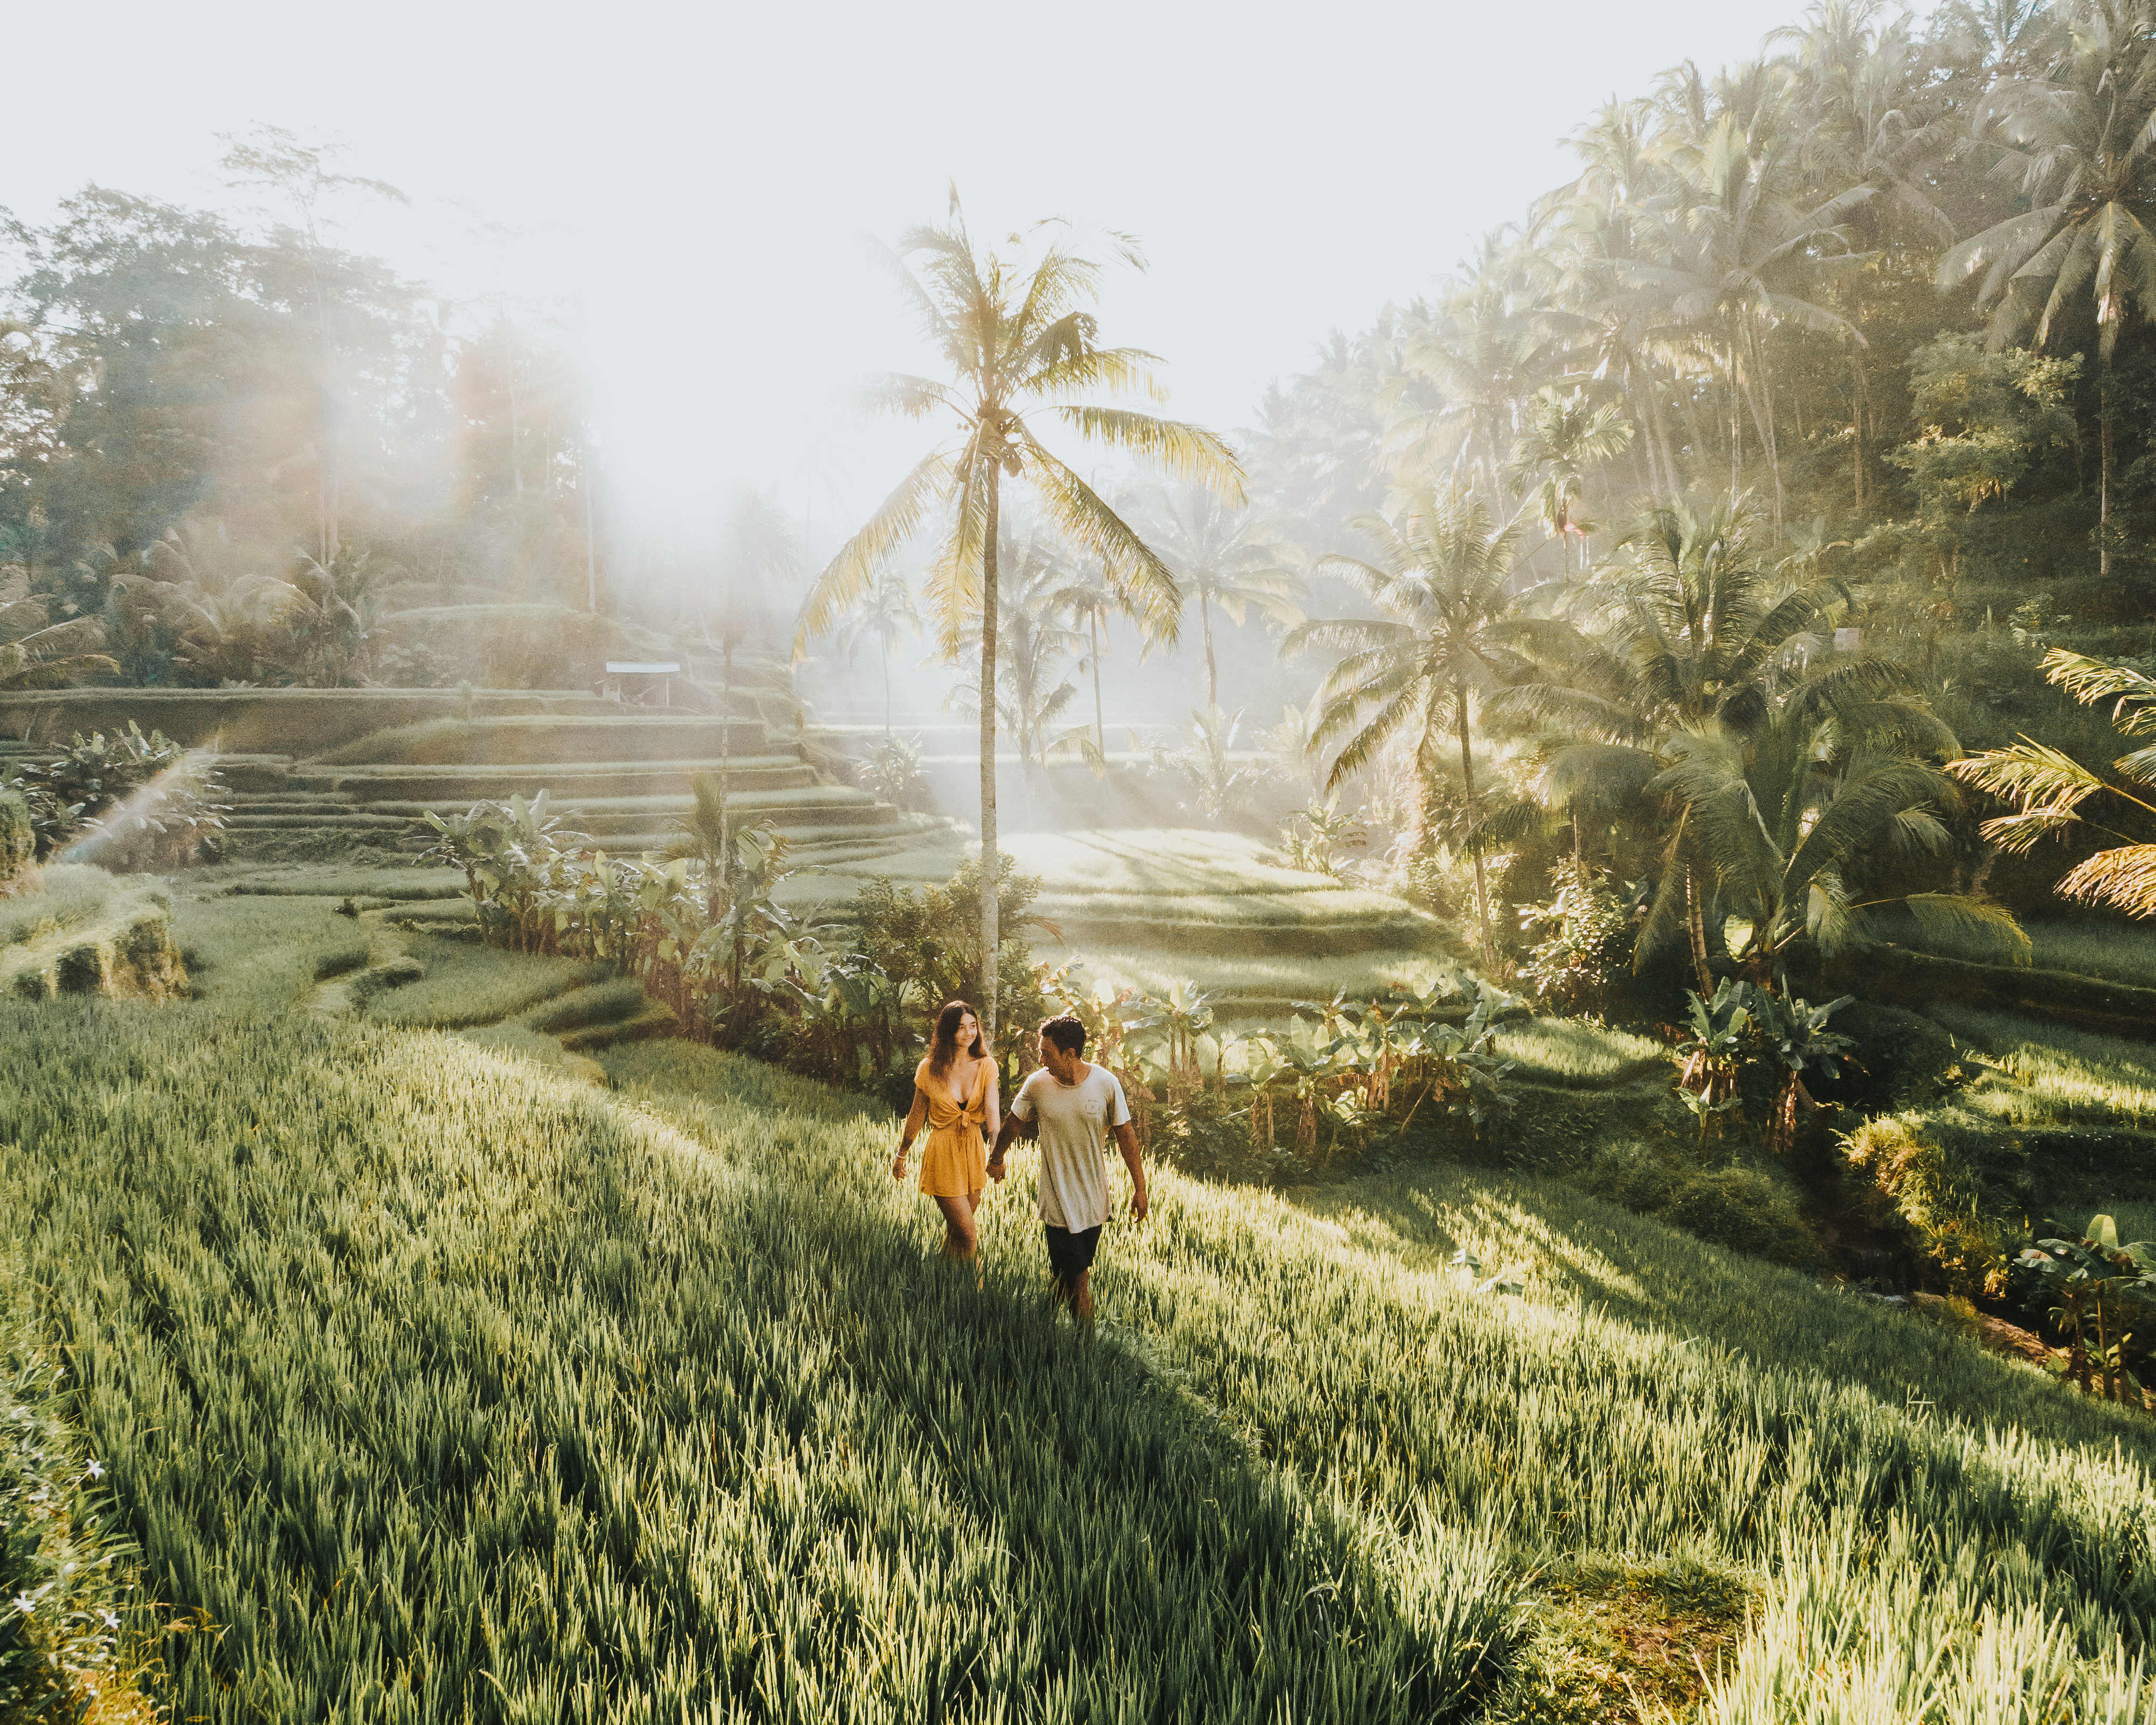 Bali Customized Private Tour with Local - Airbnb